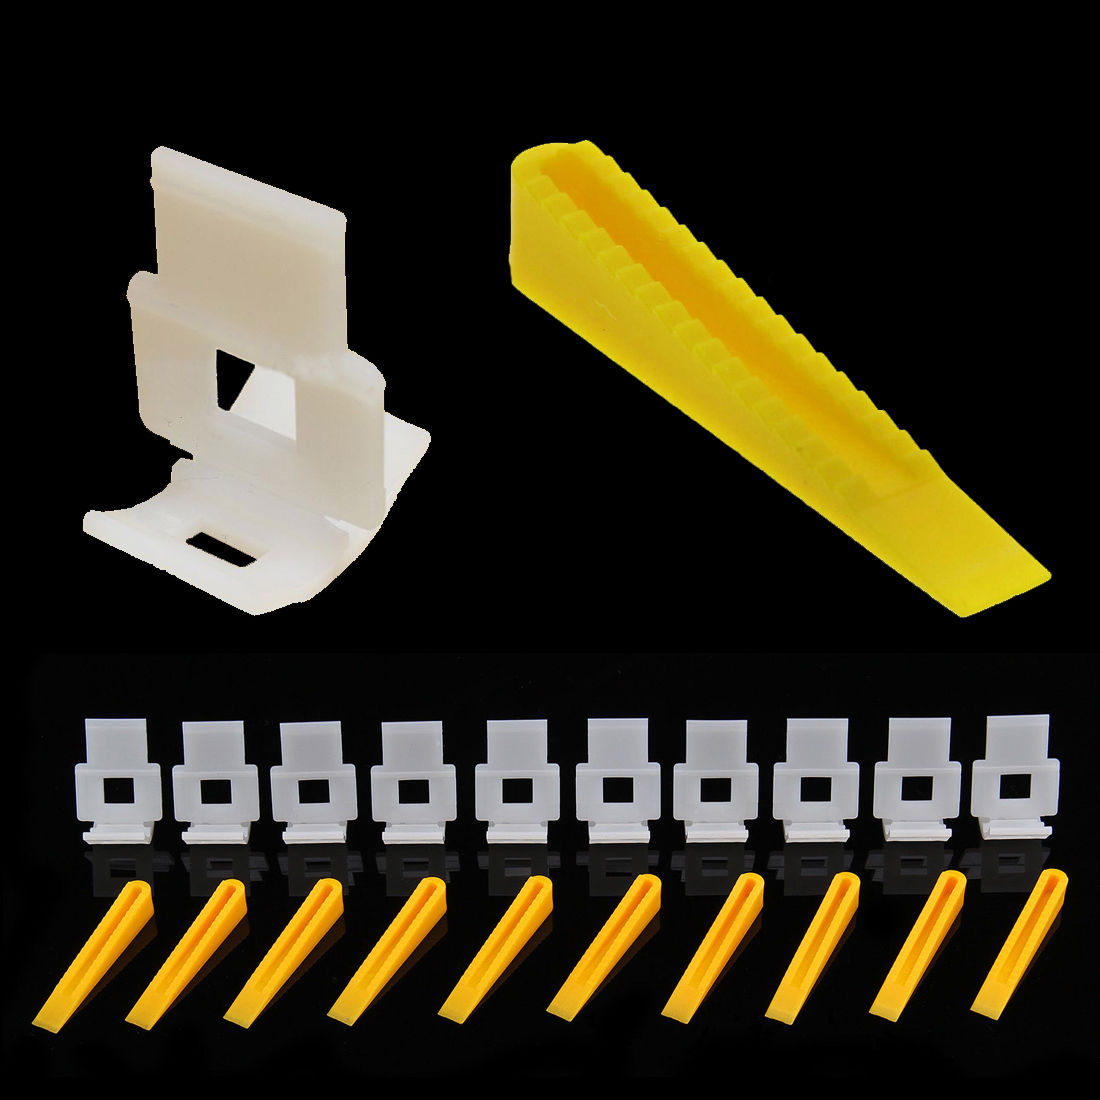 700-Tile-Leveling-Spacer-System-Construction-Tool-Spacer-Flooring-Level-Lippage